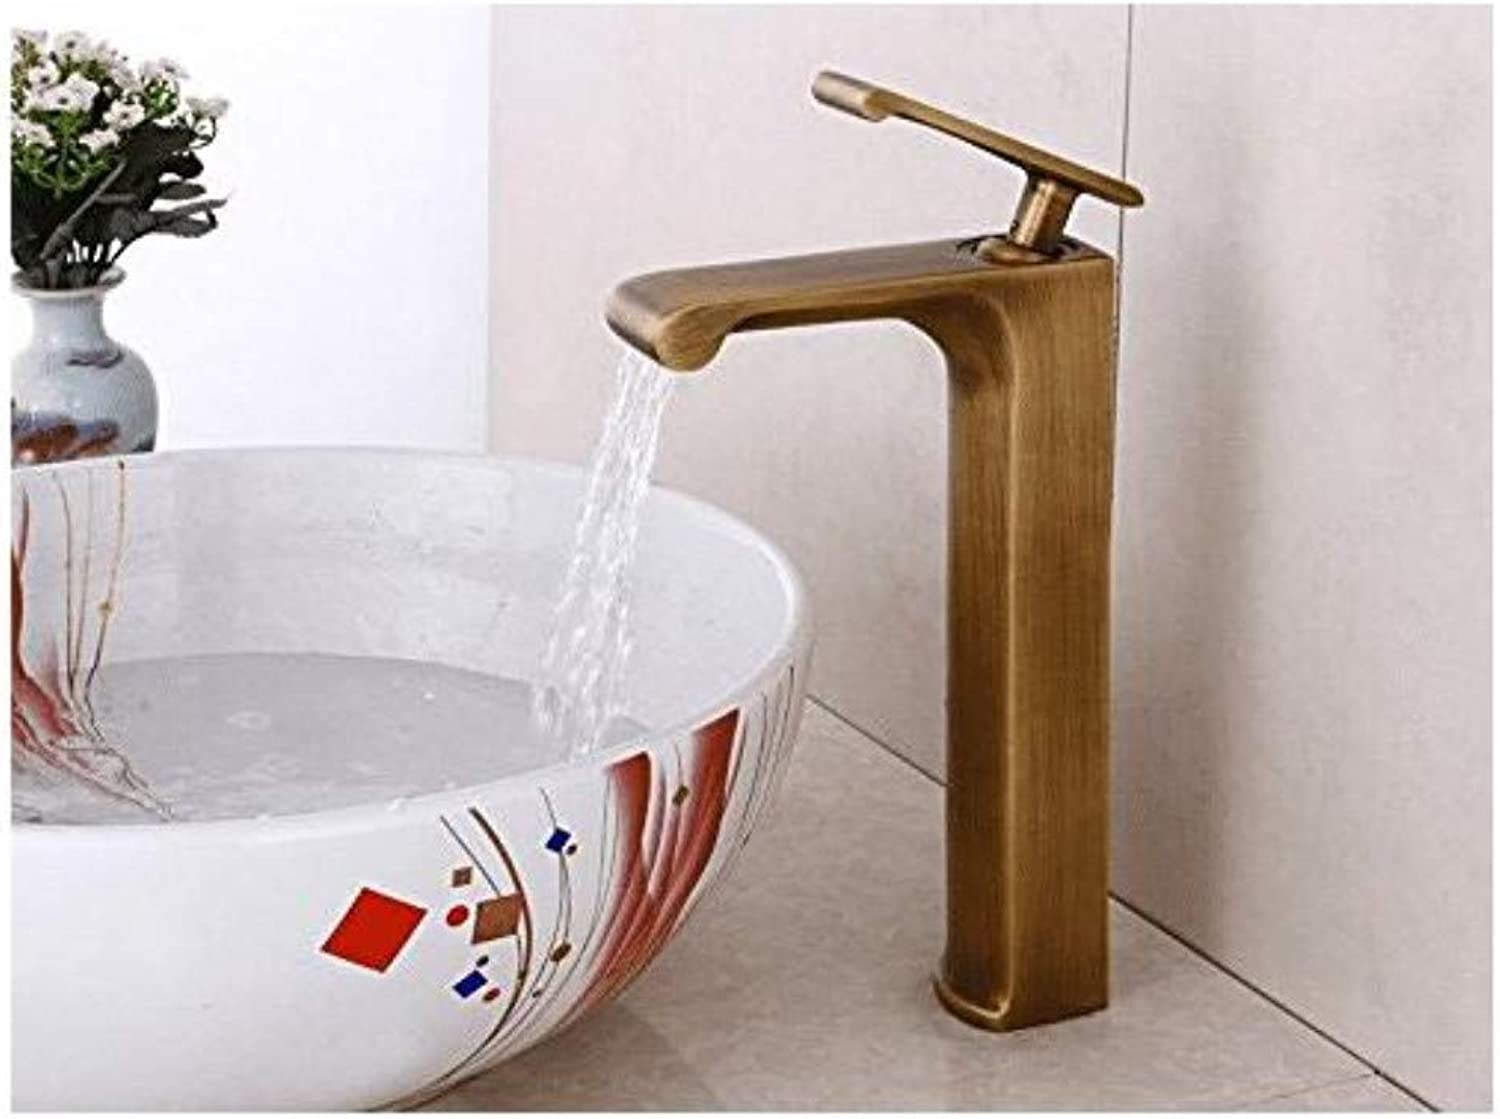 Modern Double Basin Sink Hot and Cold Water Faucetfaucet Copper Hot and Cold Wash Basin Above Counter Basin Waterfall Faucet